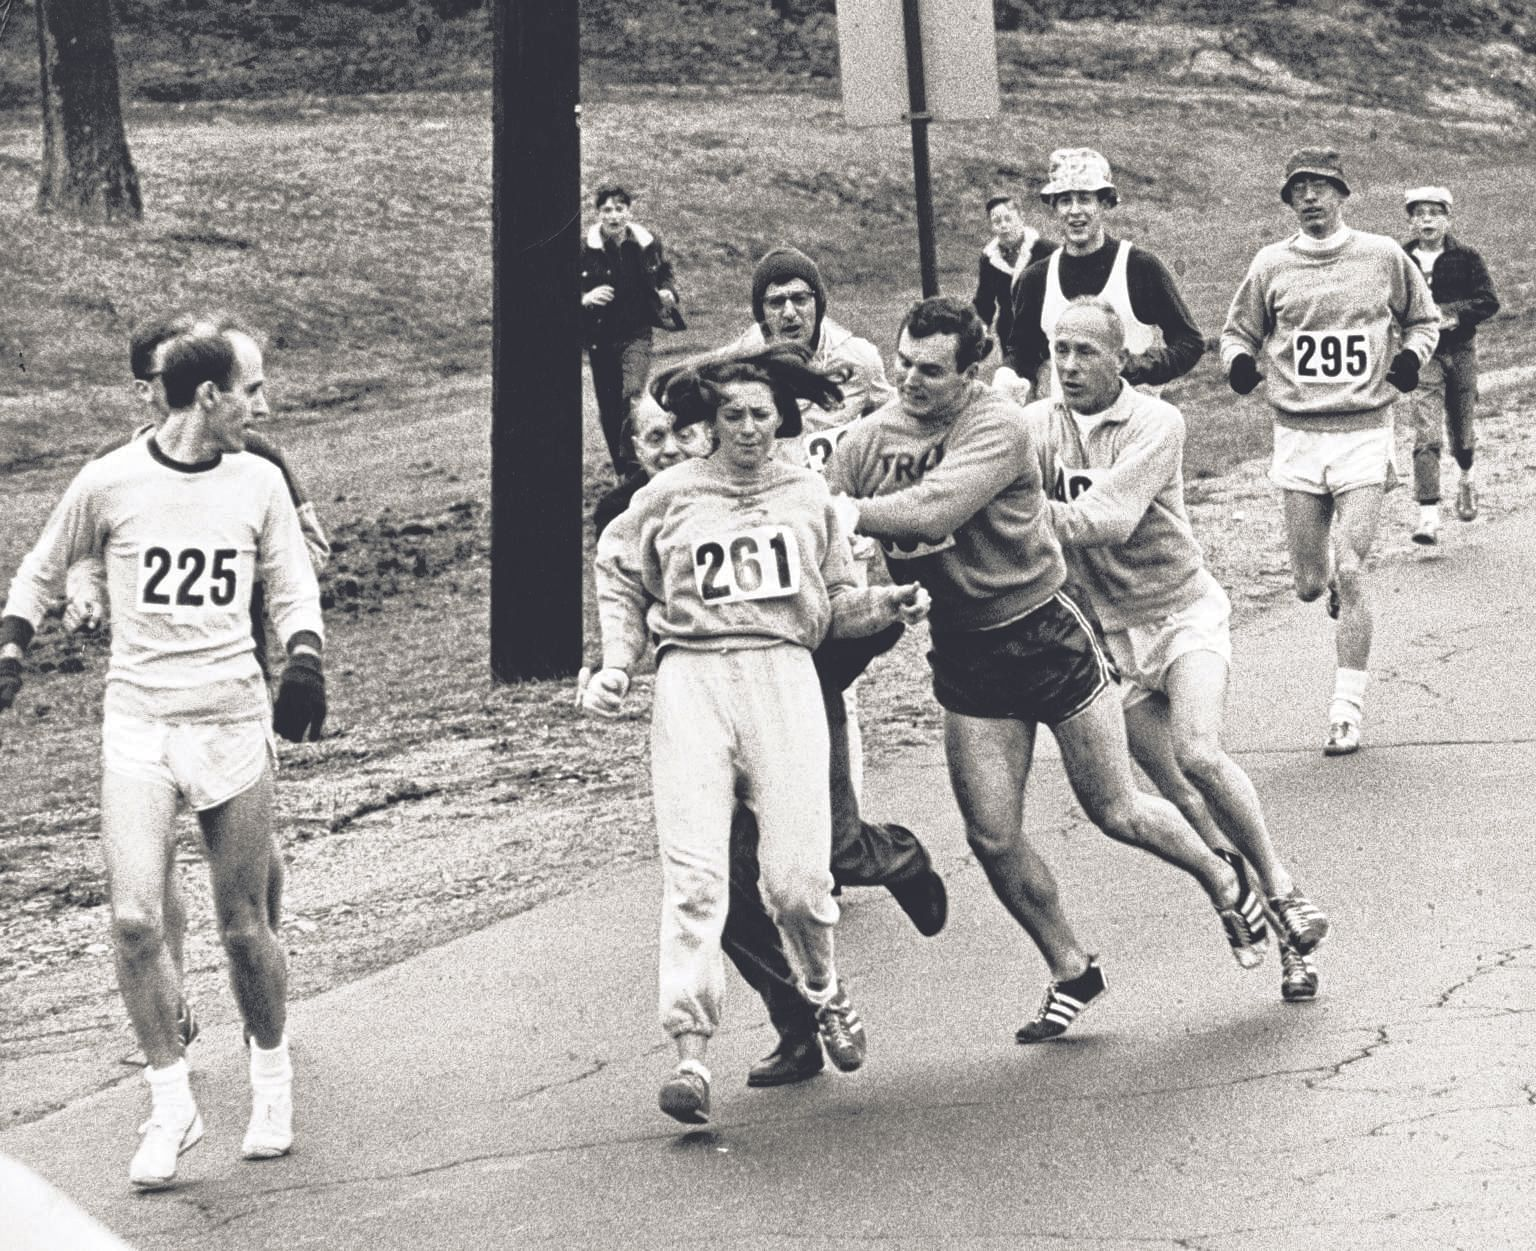 Kathrine Switzer (261) of Syracuse, New York, was spotted early in the 1967 Boston Marathon by race official Jock Semple (behind her in trousers), who tried to rip the number off her shirt and remove her from the race. The then 20-year-old's friends